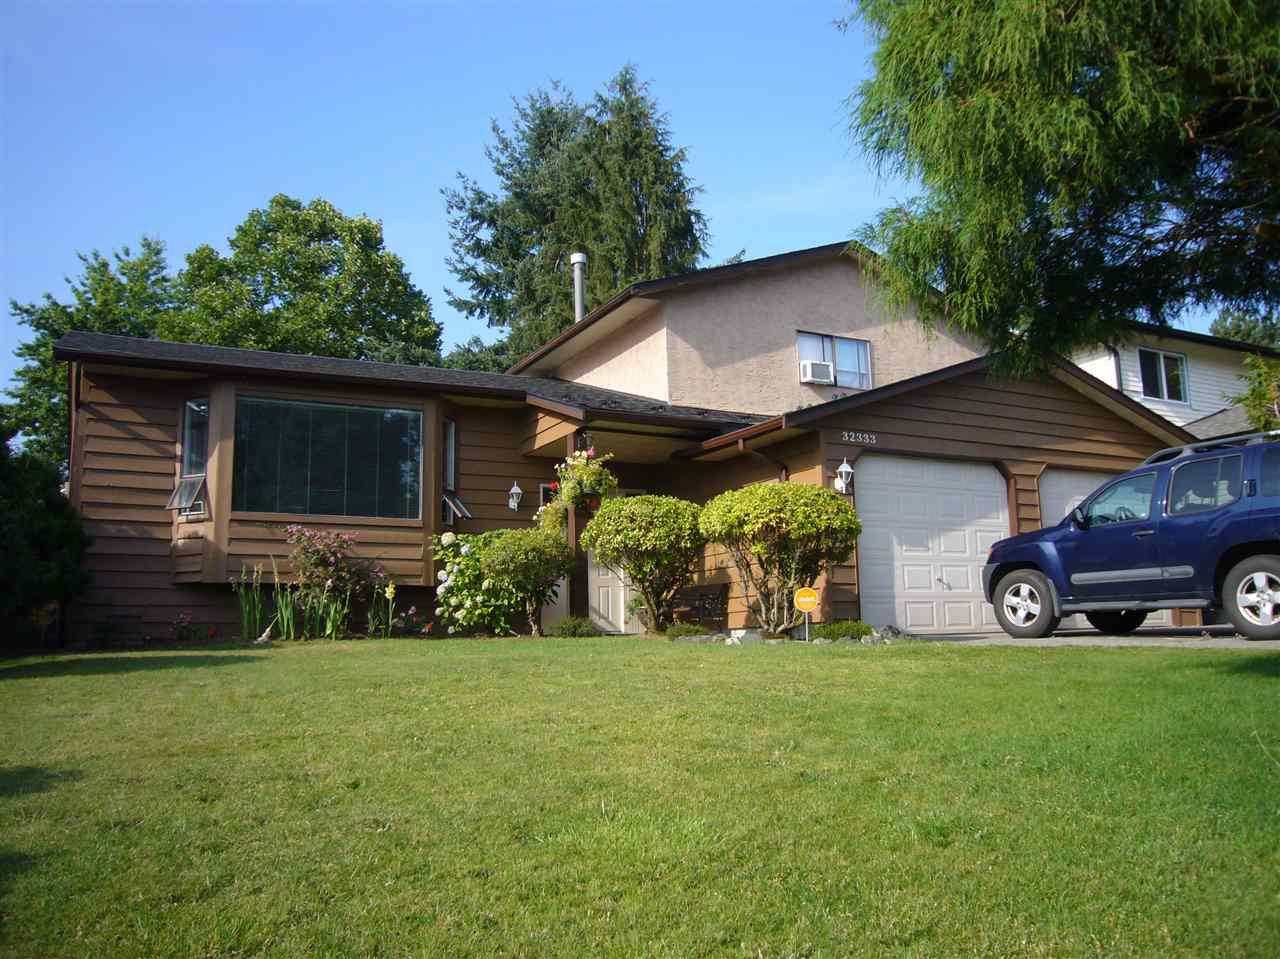 Photo 1: Photos: 32333 BEAVER Drive in Mission: Mission BC House for sale : MLS®# R2197503